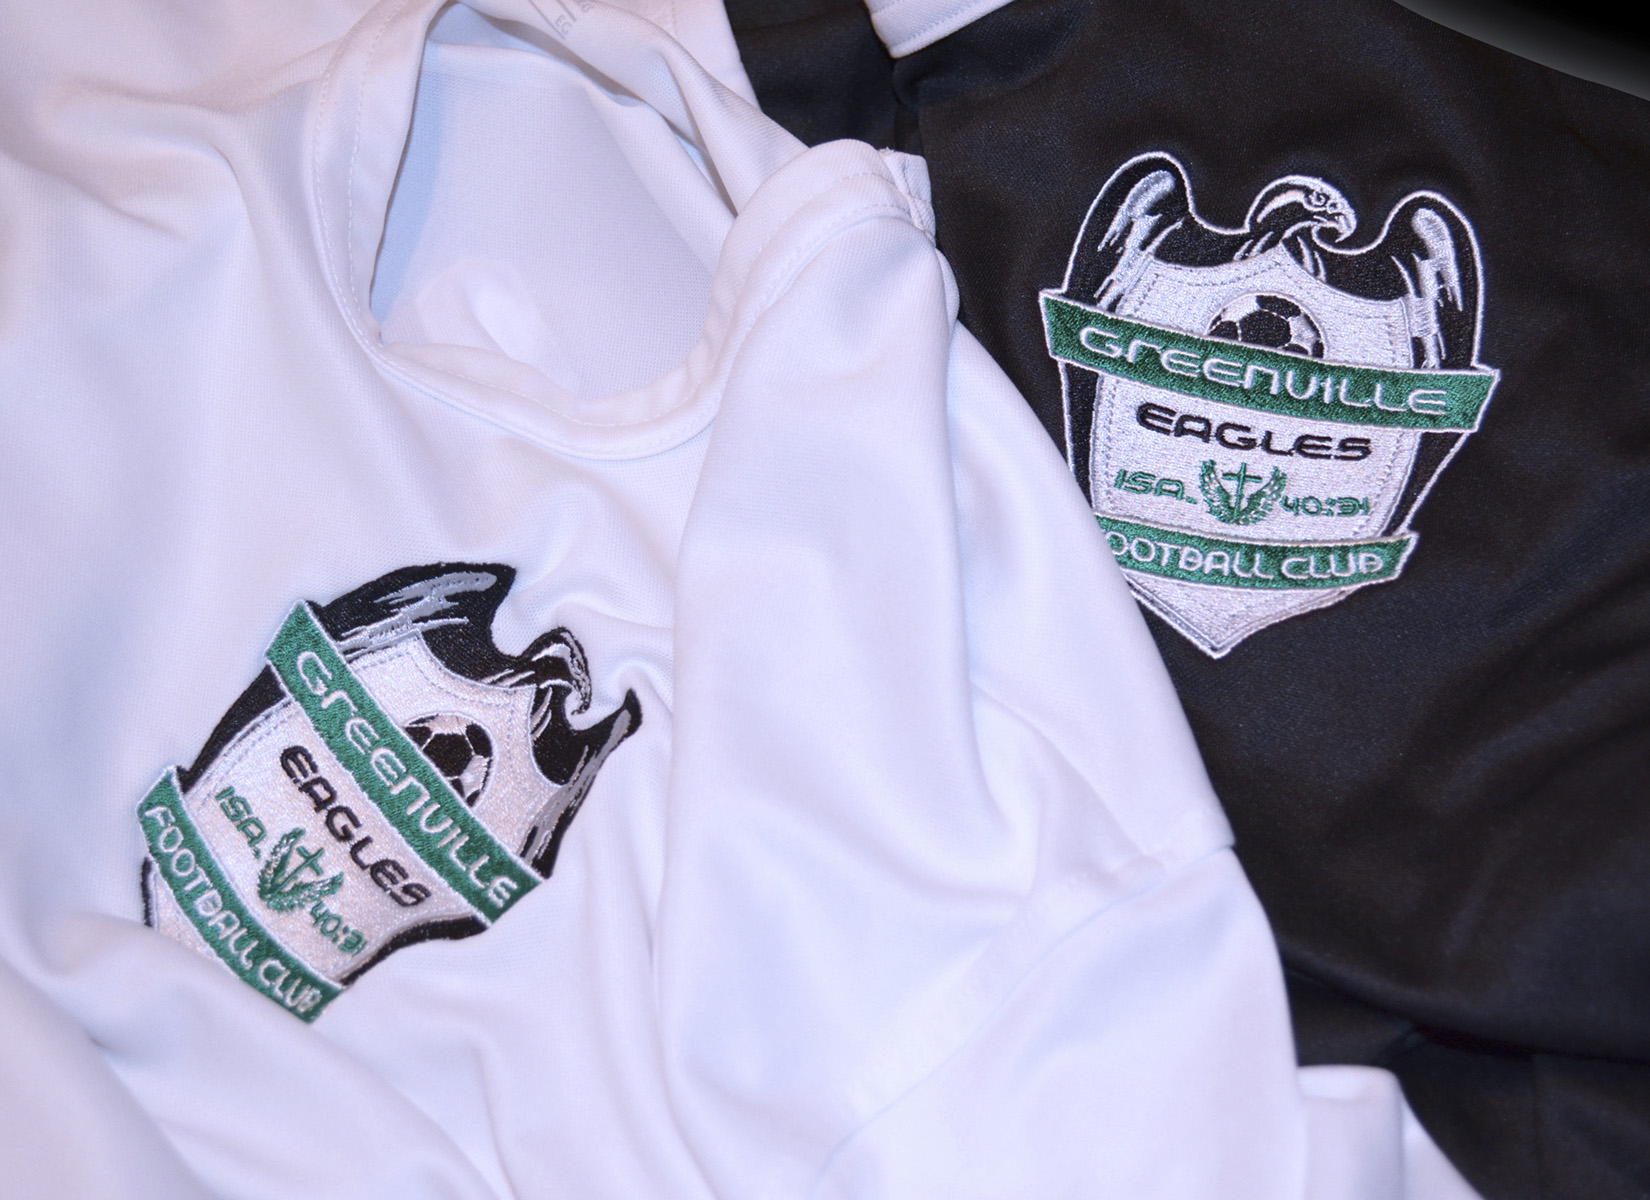 greenville eagles soccer logo design embroidered on jersey